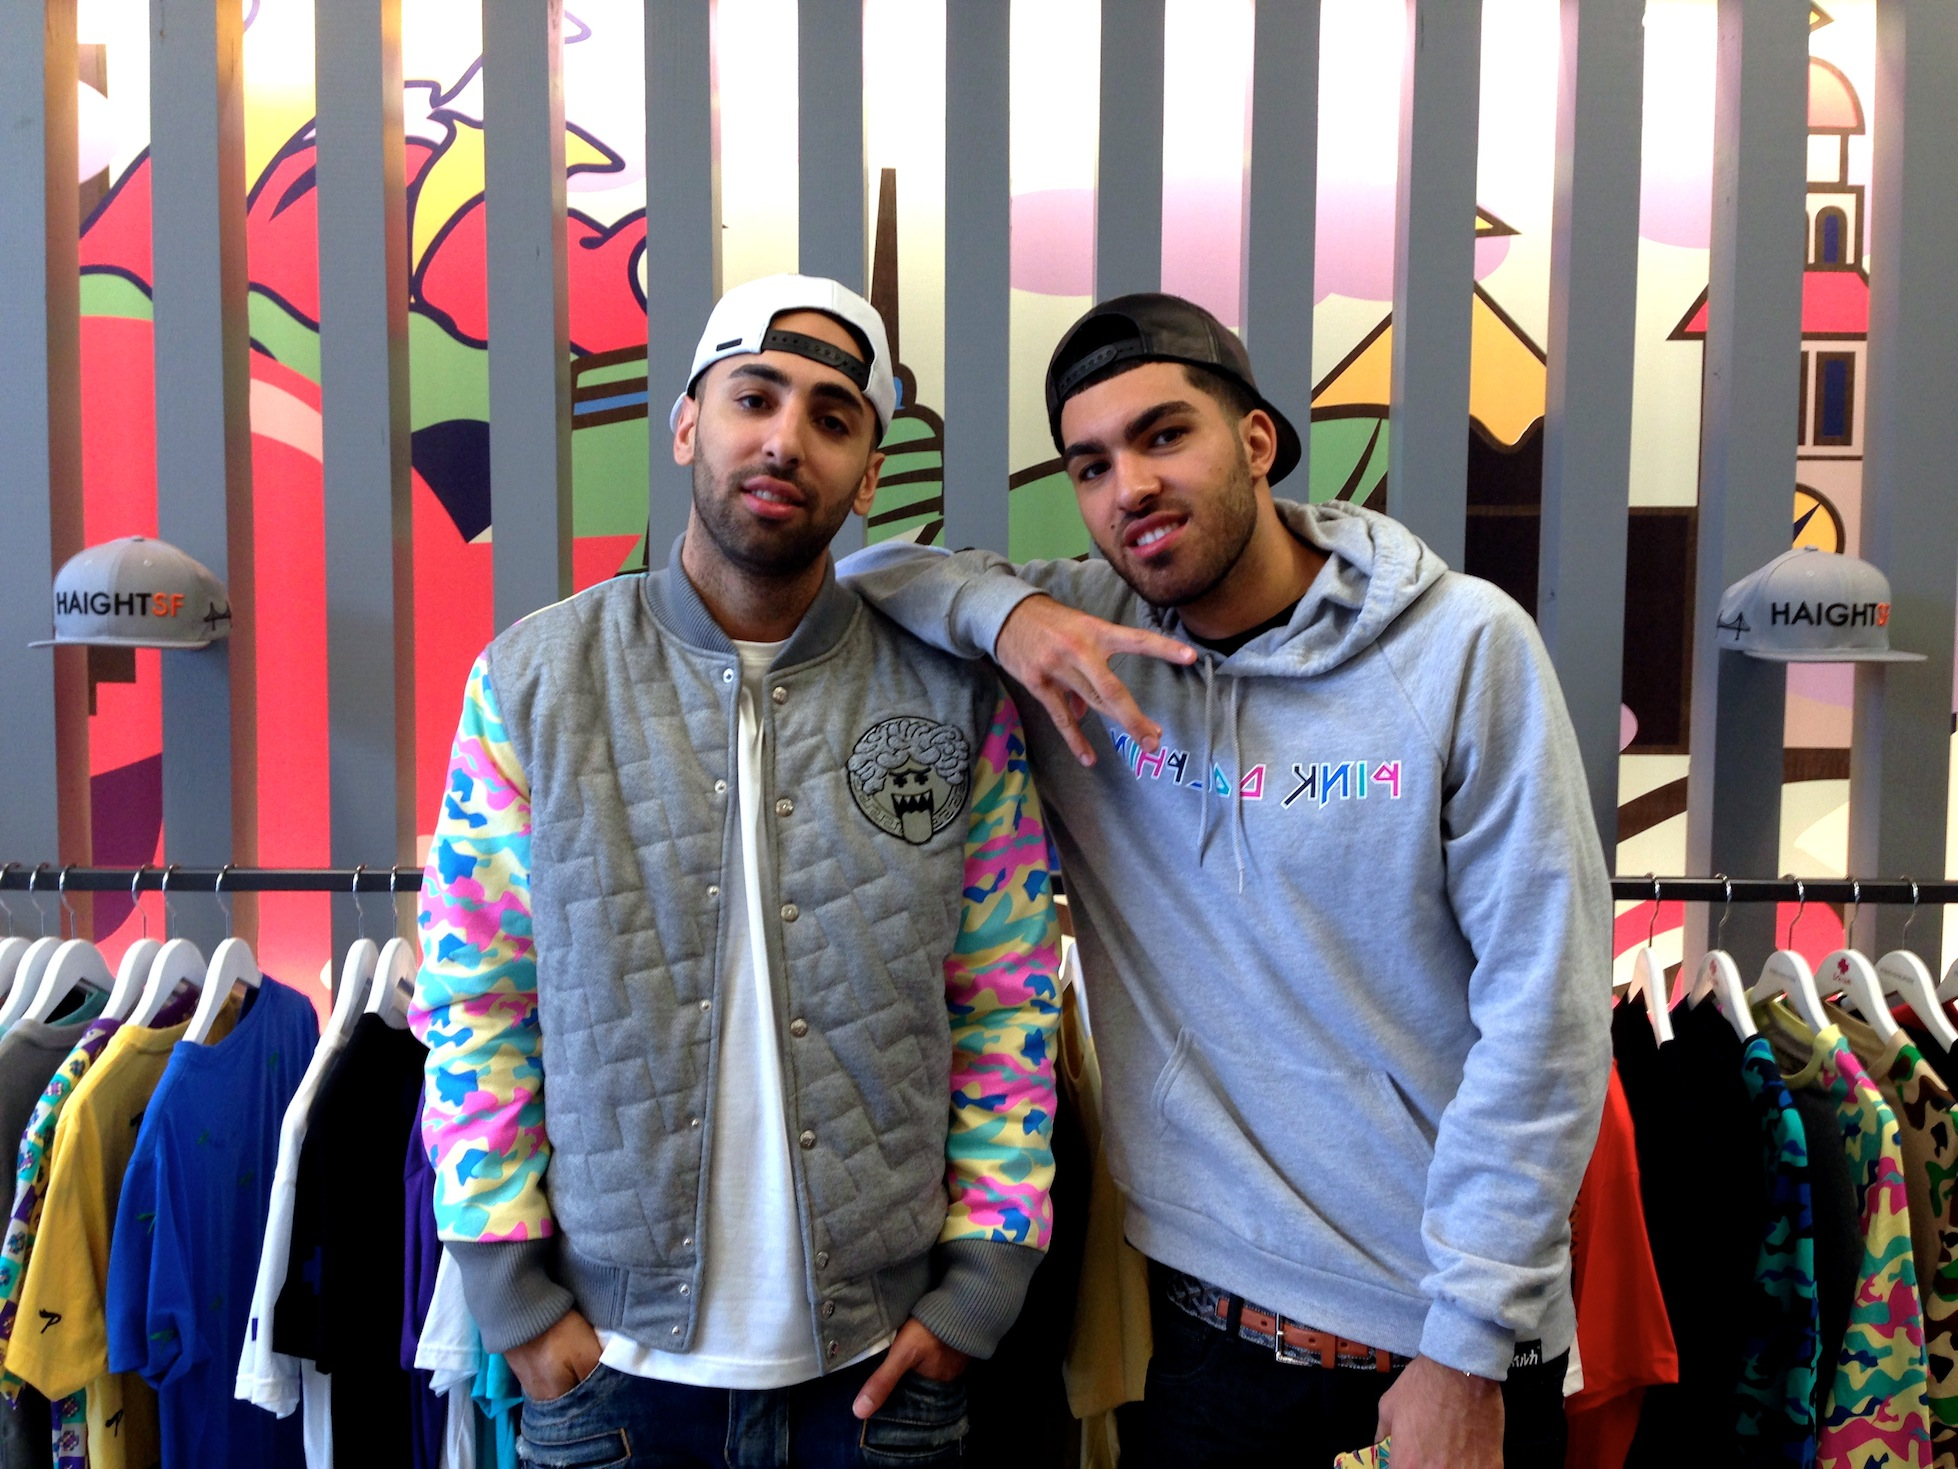 Streetwear Brand Pink + Dolphin Opens on Haight Street